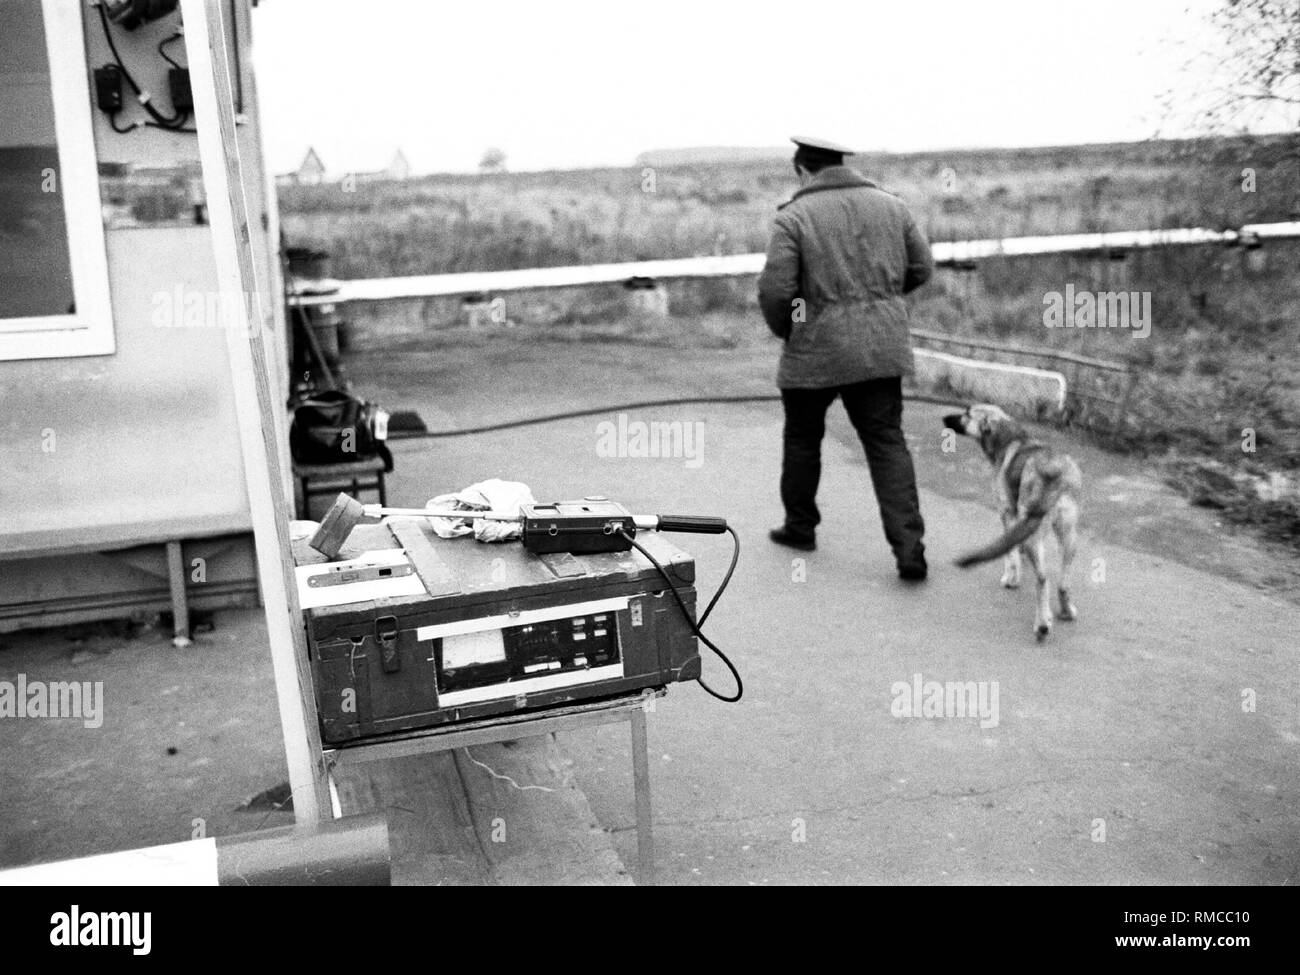 Control station at the uninhabitable 30 km Zone around the Chernobyl disaster reactor. - Stock Image